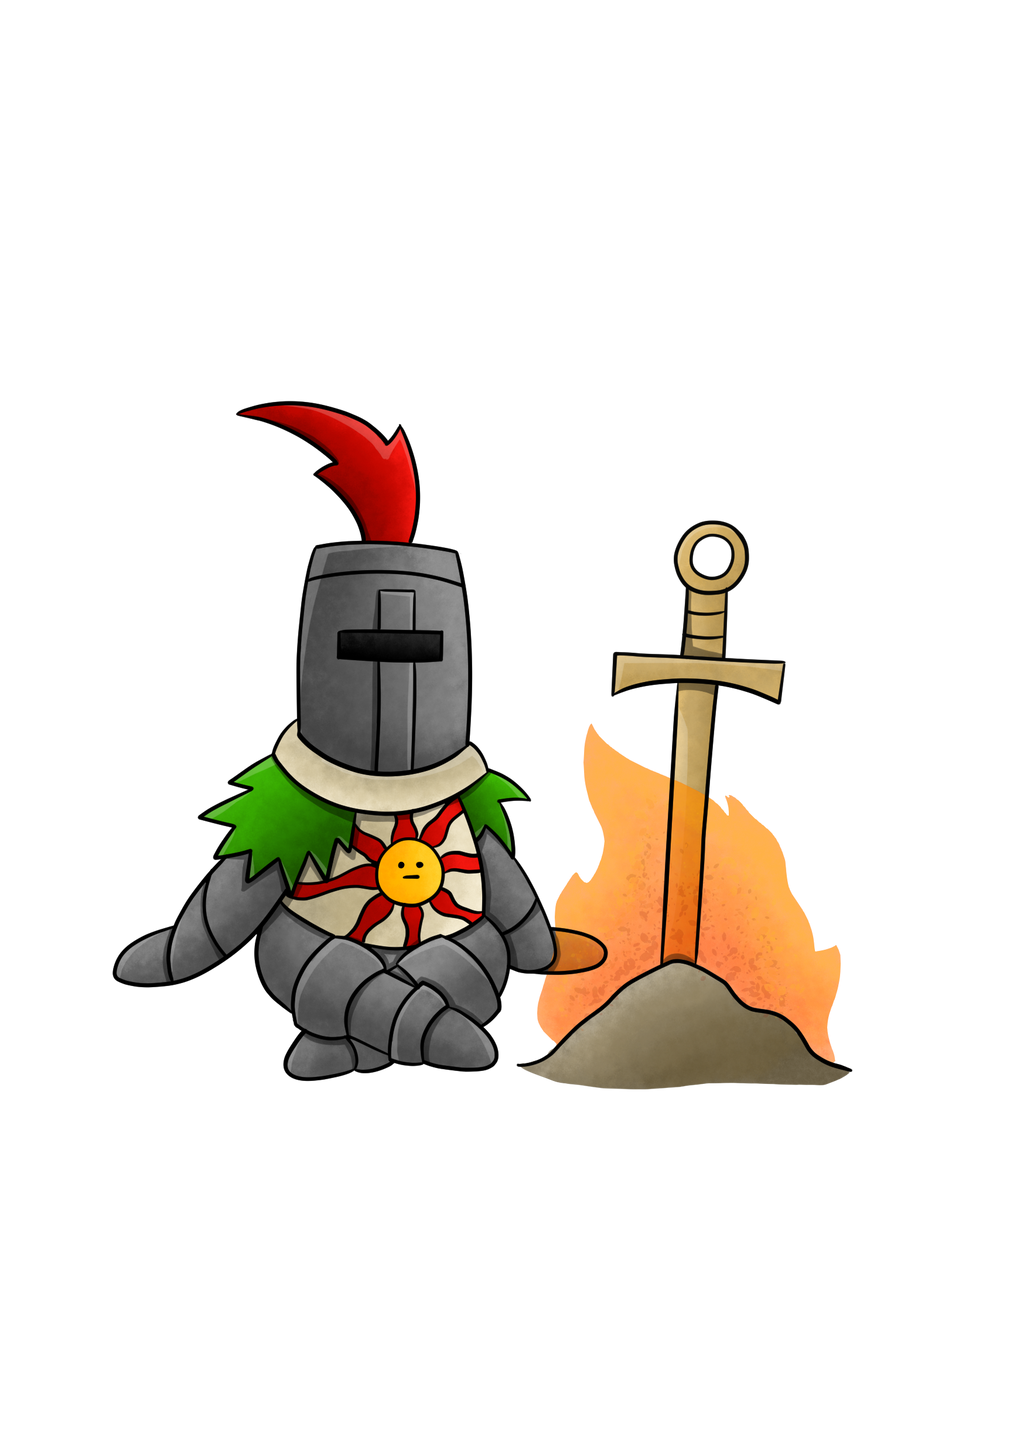 solaire_of_derp_by_genomorph-dbtpghn.png